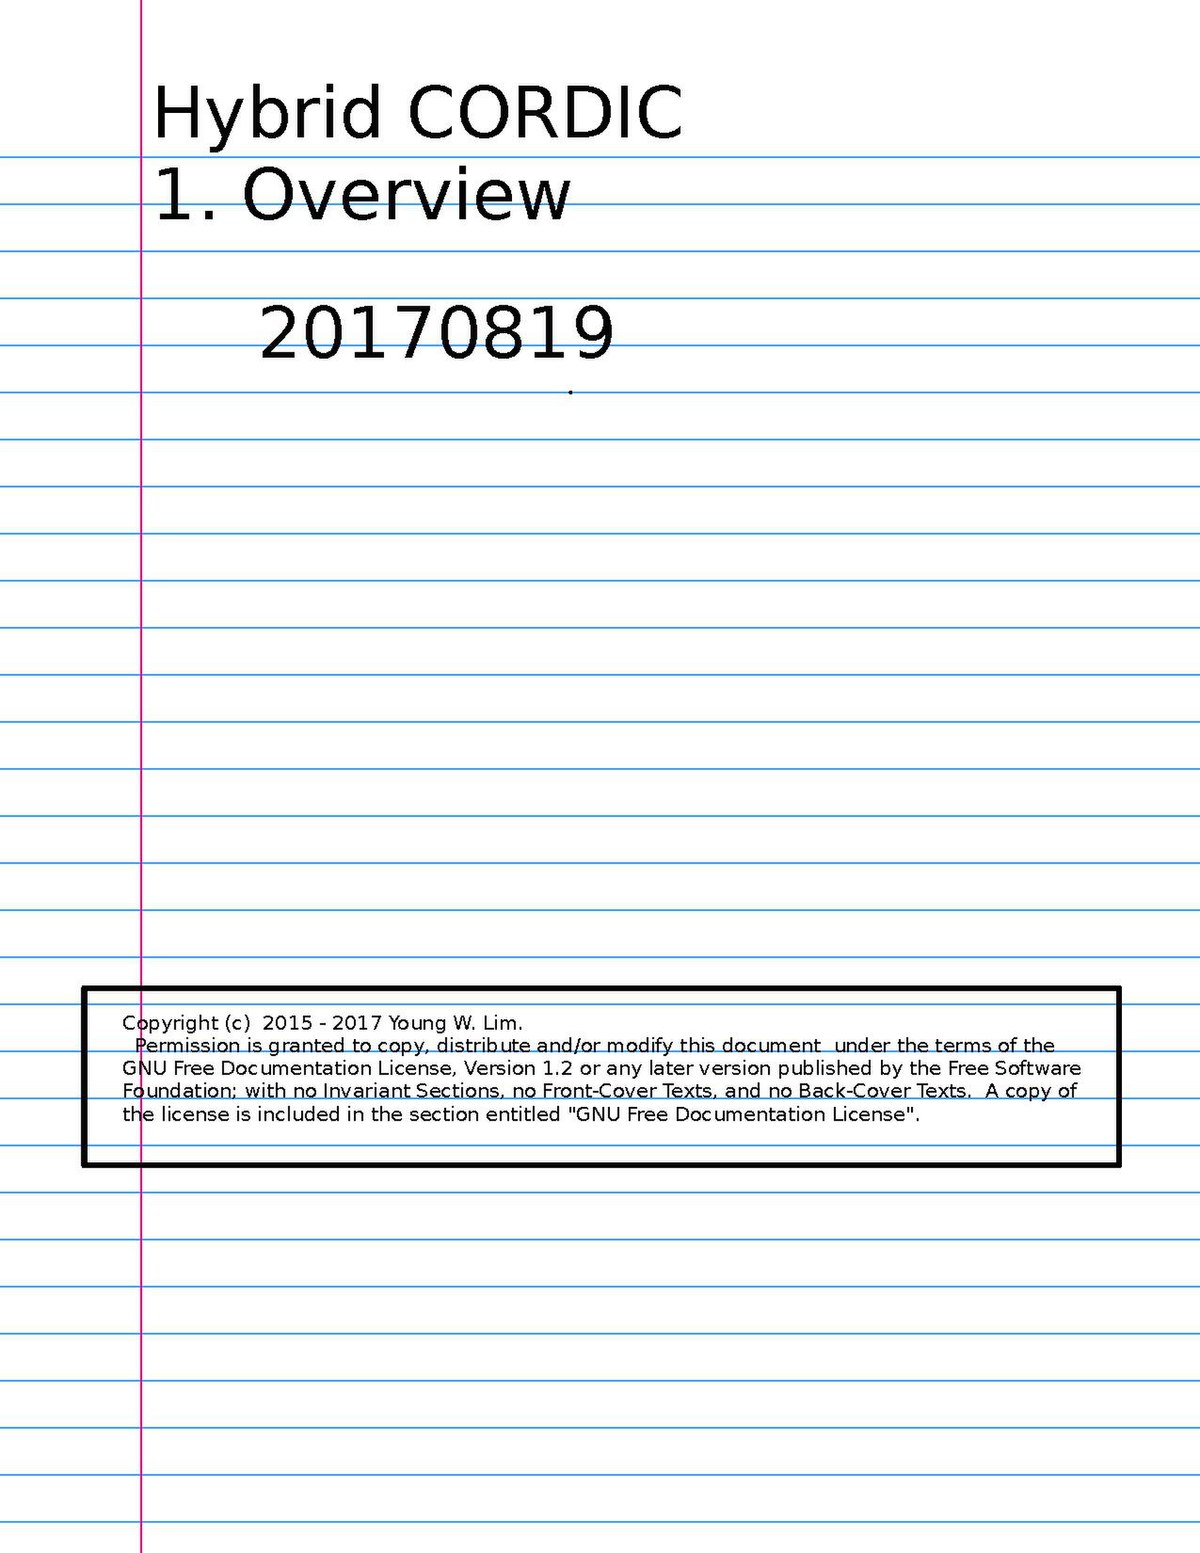 File Hb 1 Overview 20170819 Pdf